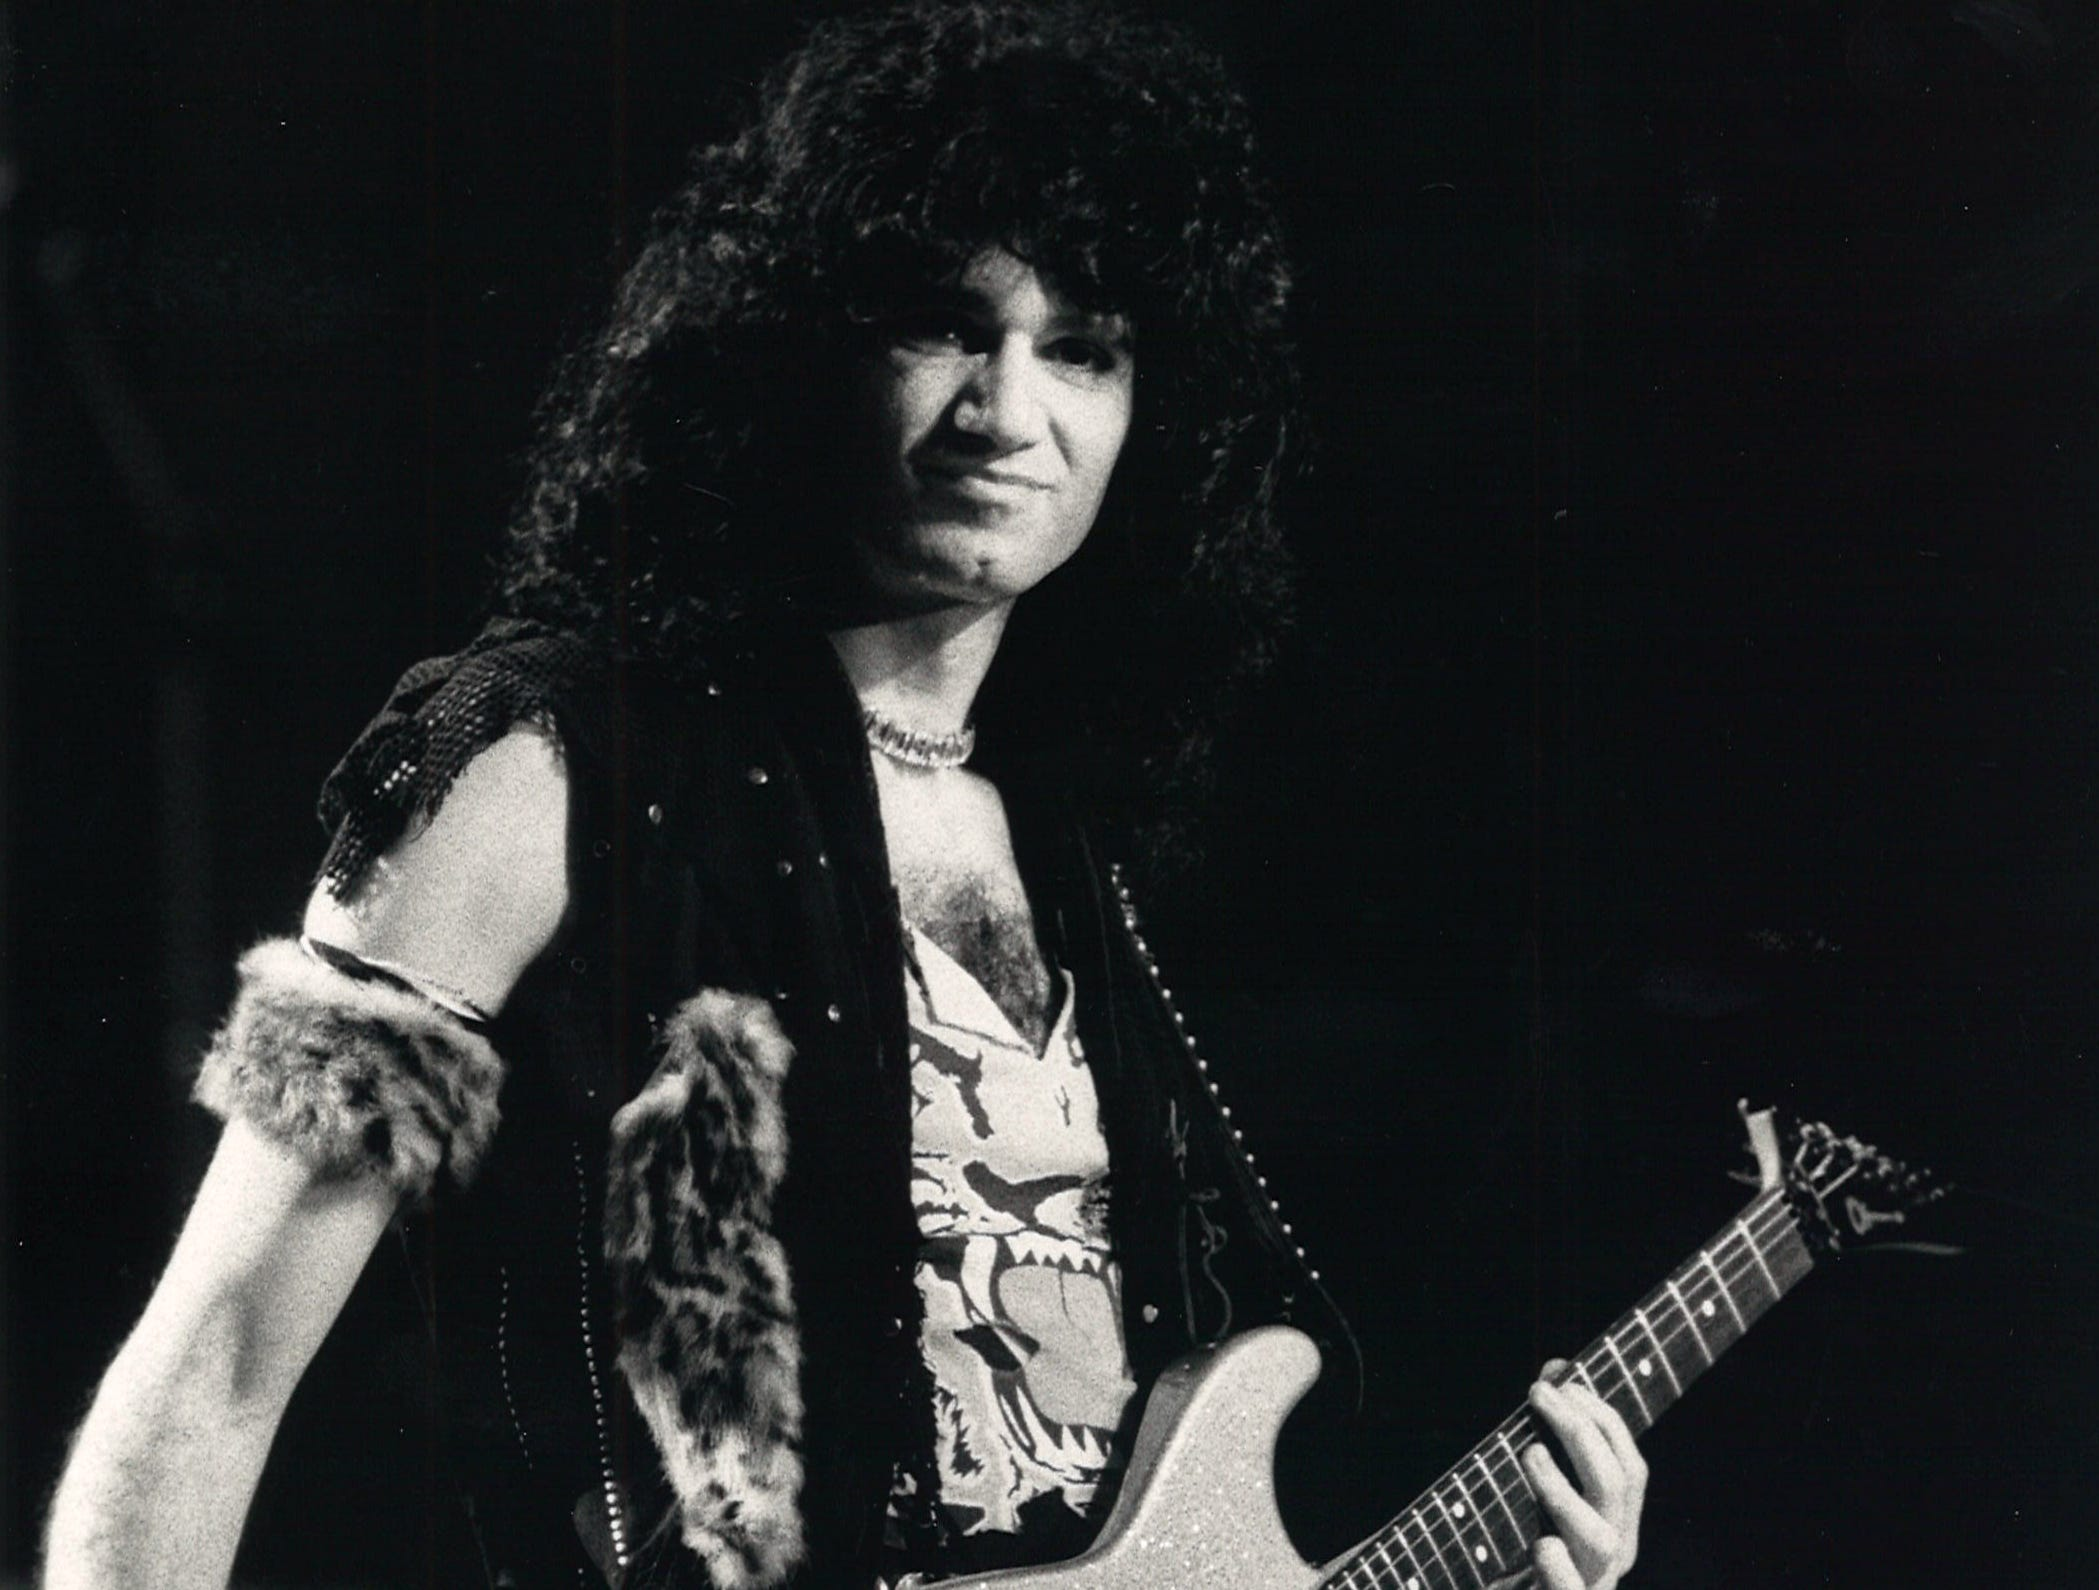 Bruce Kulick, new member of Kiss, performs during a concert at Memorial Coliseum on Jan. 27, 1985 in Corpus Christi.